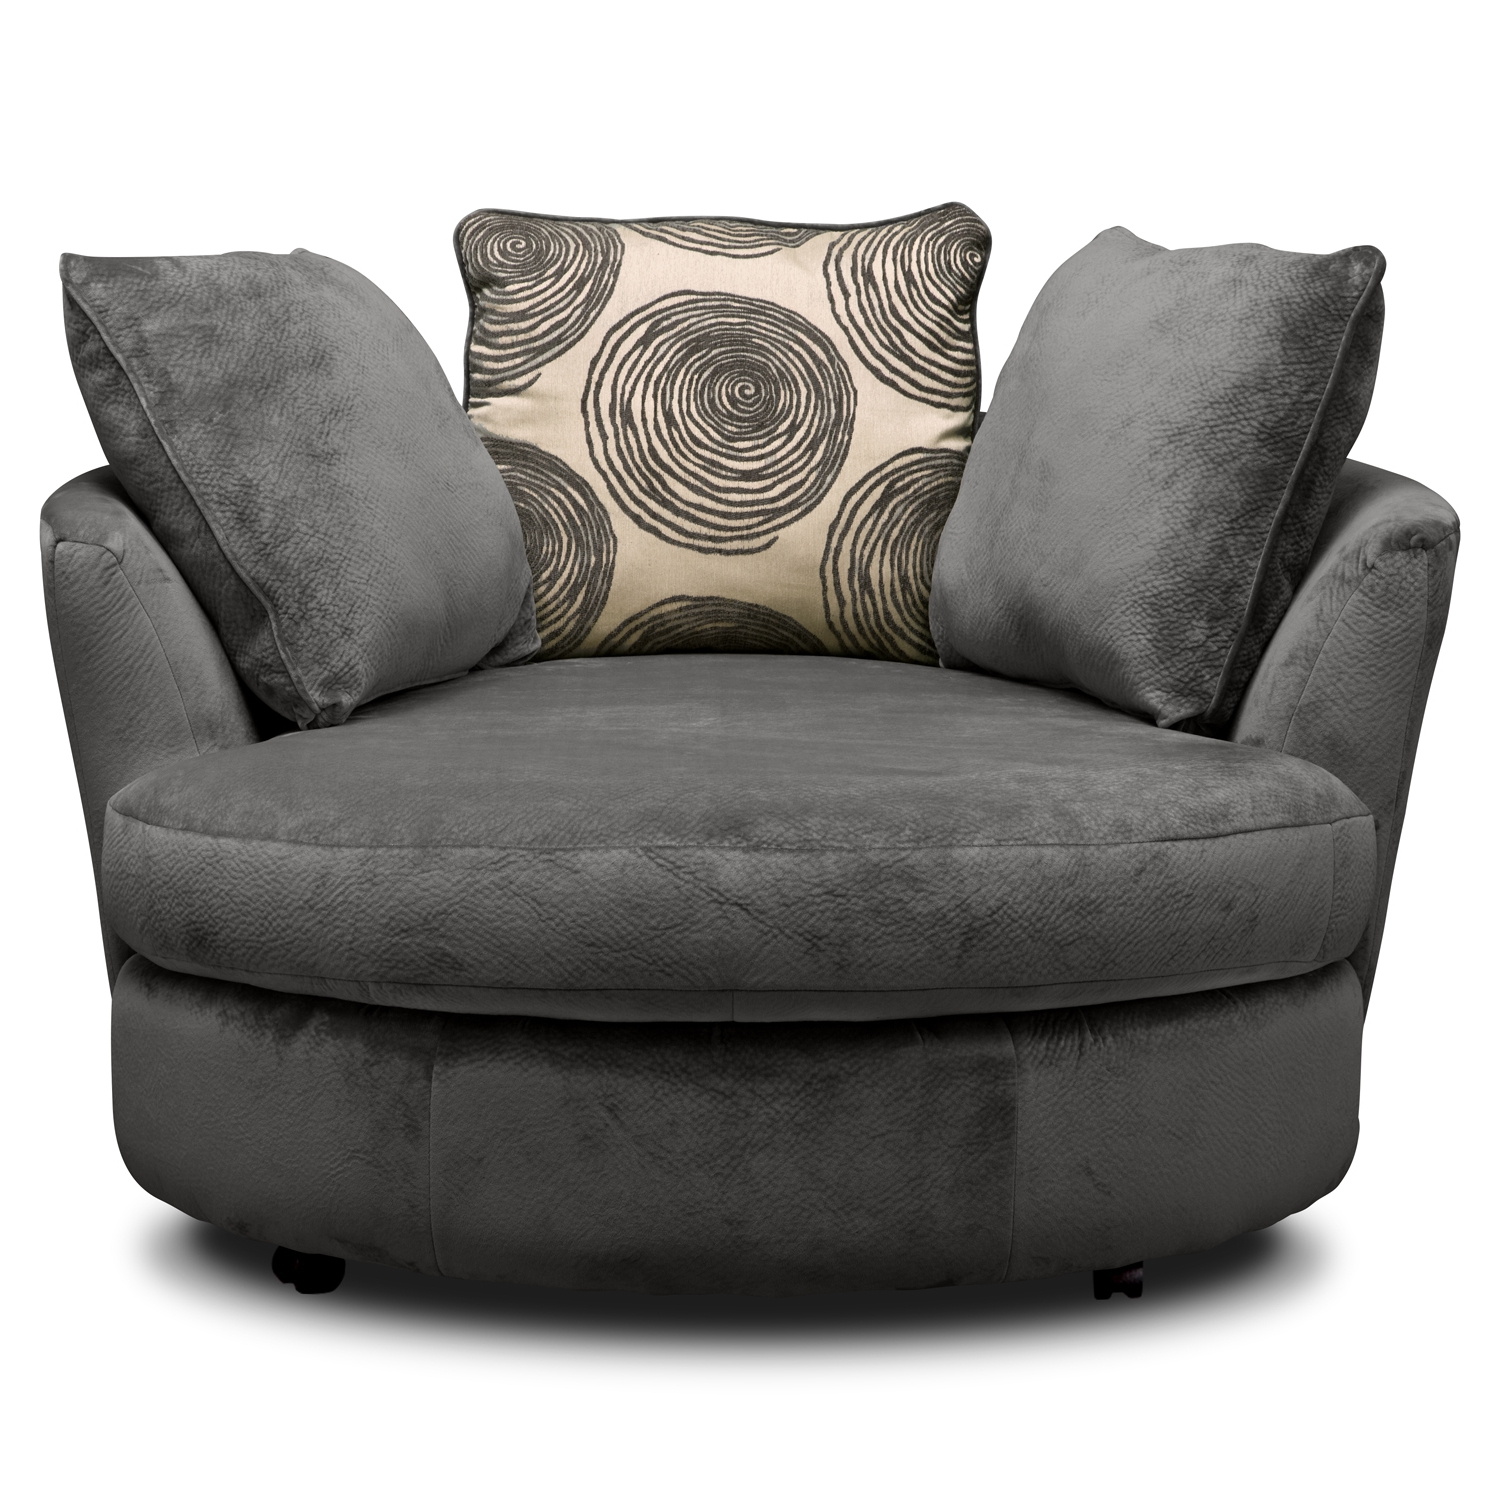 Popular Amazing Circle Sofa Chair 68 For Modern Sofa Ideas With Circle Sofa Throughout Circle Sofa Chairs (View 2 of 20)